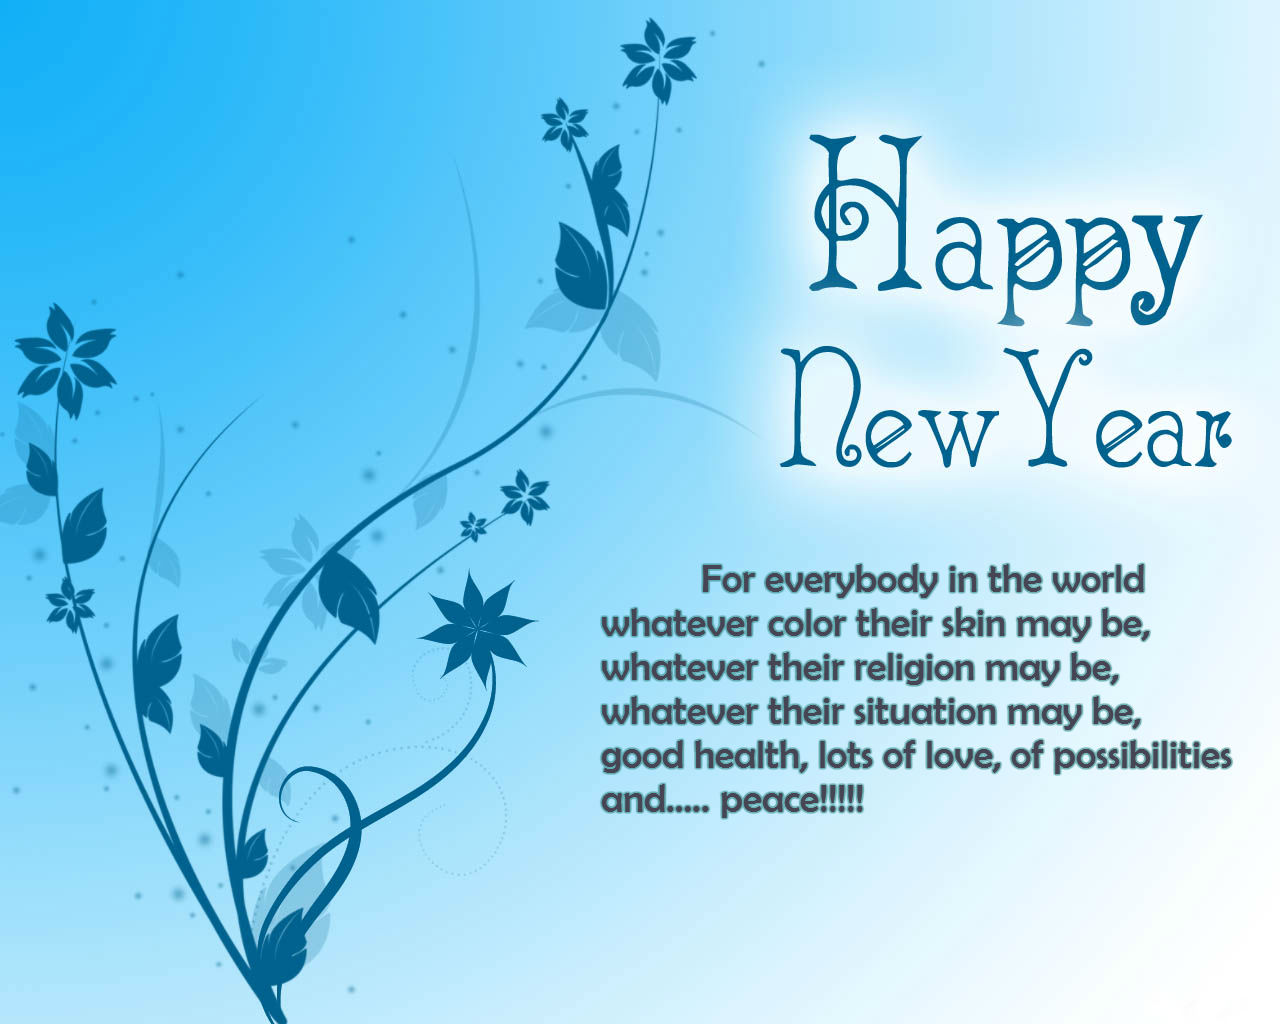 http://4.bp.blogspot.com/-Lgx1SjC4wIk/UN6IuW2GyeI/AAAAAAAAAjs/4q5ELVYsMMA/s1600/happy-new-year-2013-wishes-greeting-cards-2.jpg